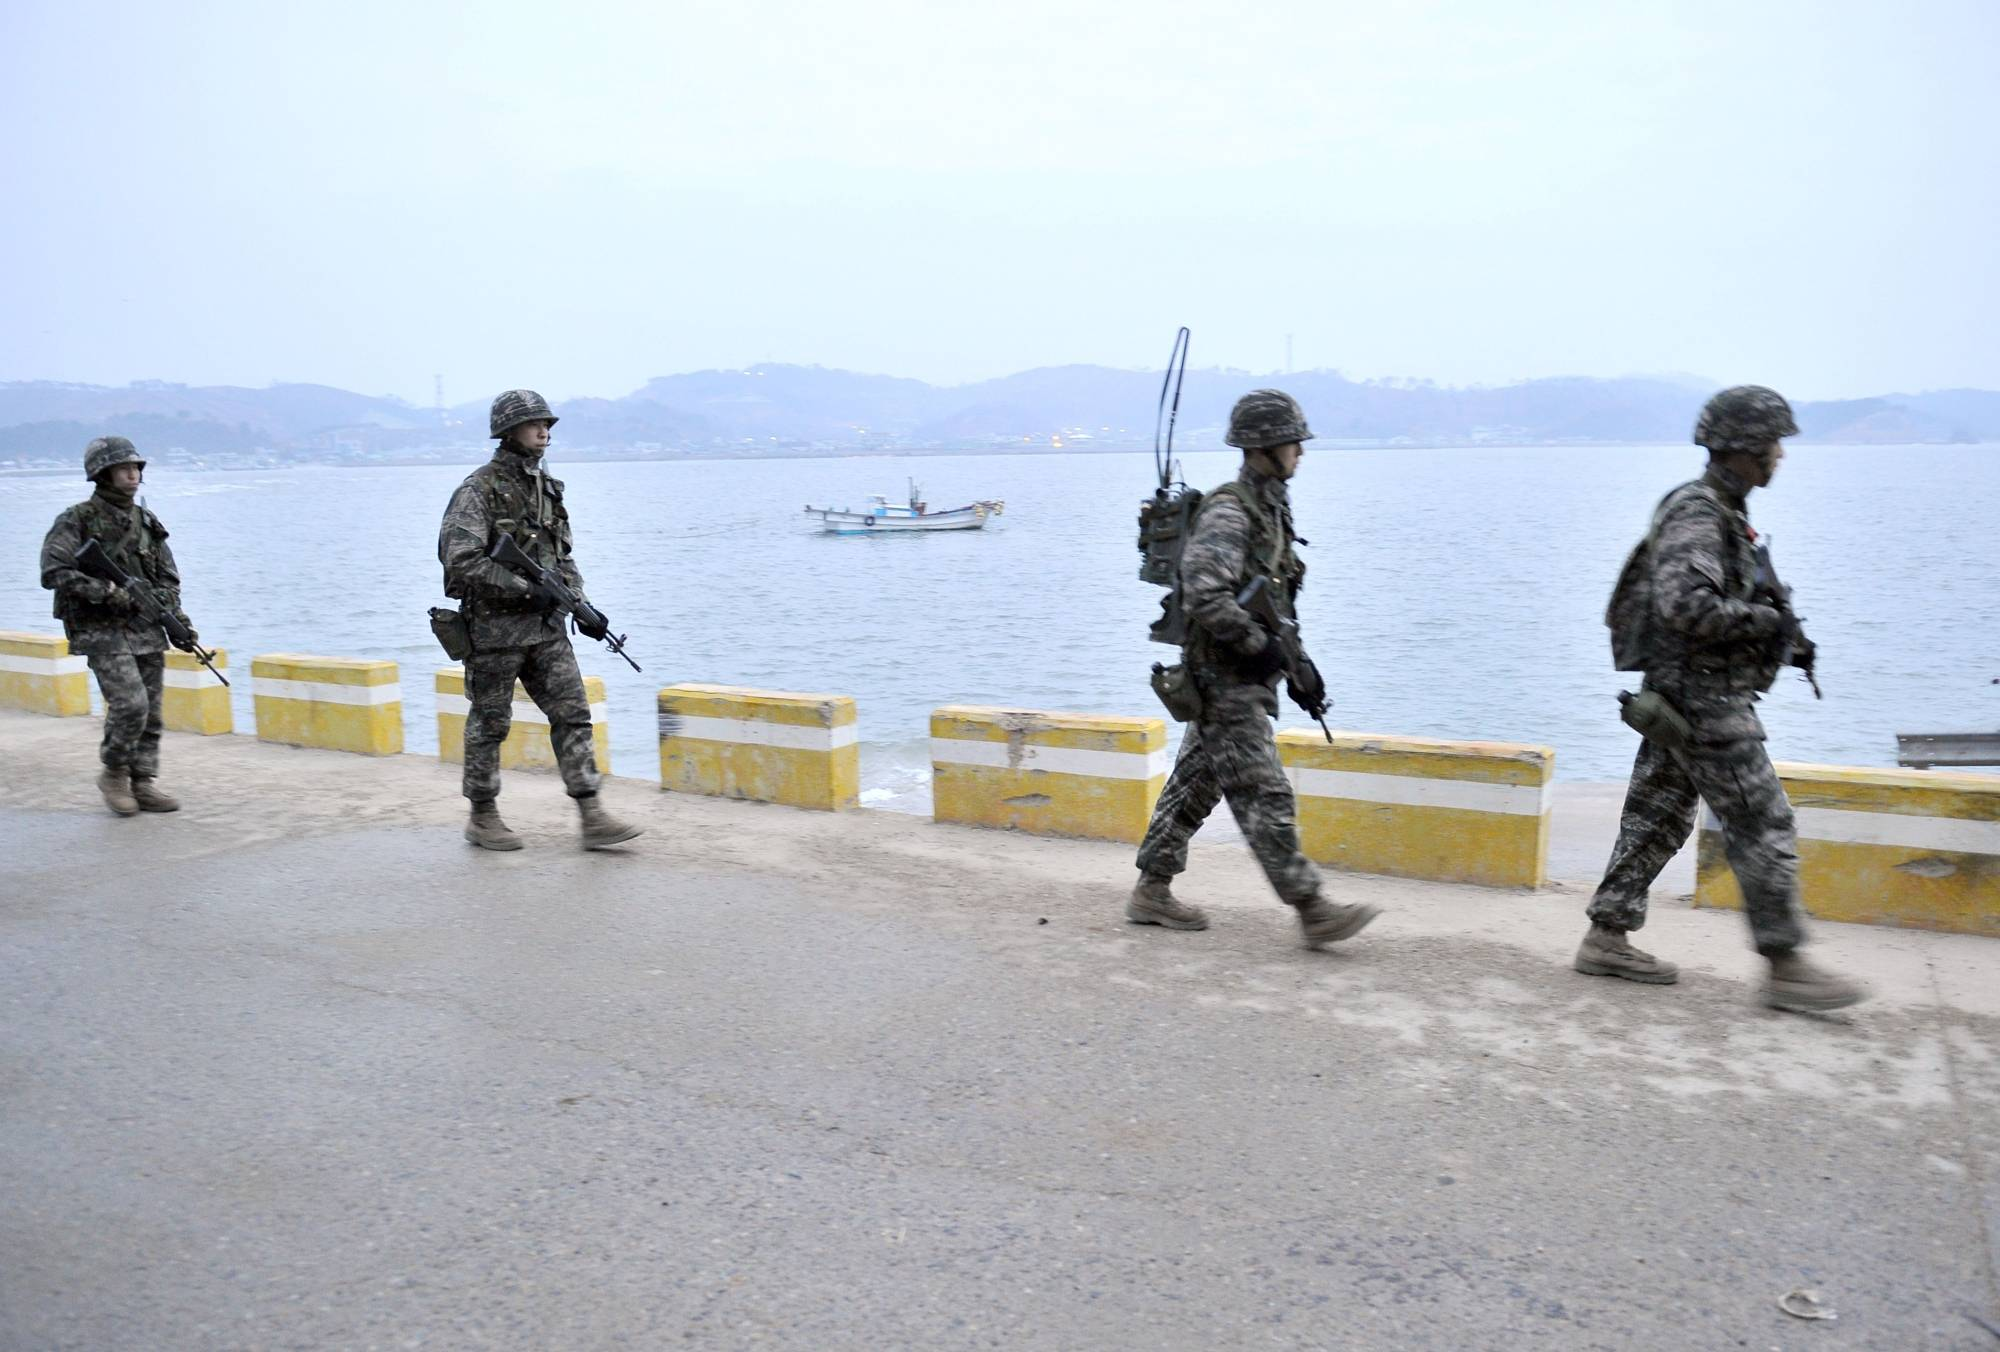 South Korean soldiers patrol the South Korea-controlled island of Yeonpyeong near disputed waters of the Yellow Sea in 2013. | AFP-JIJI